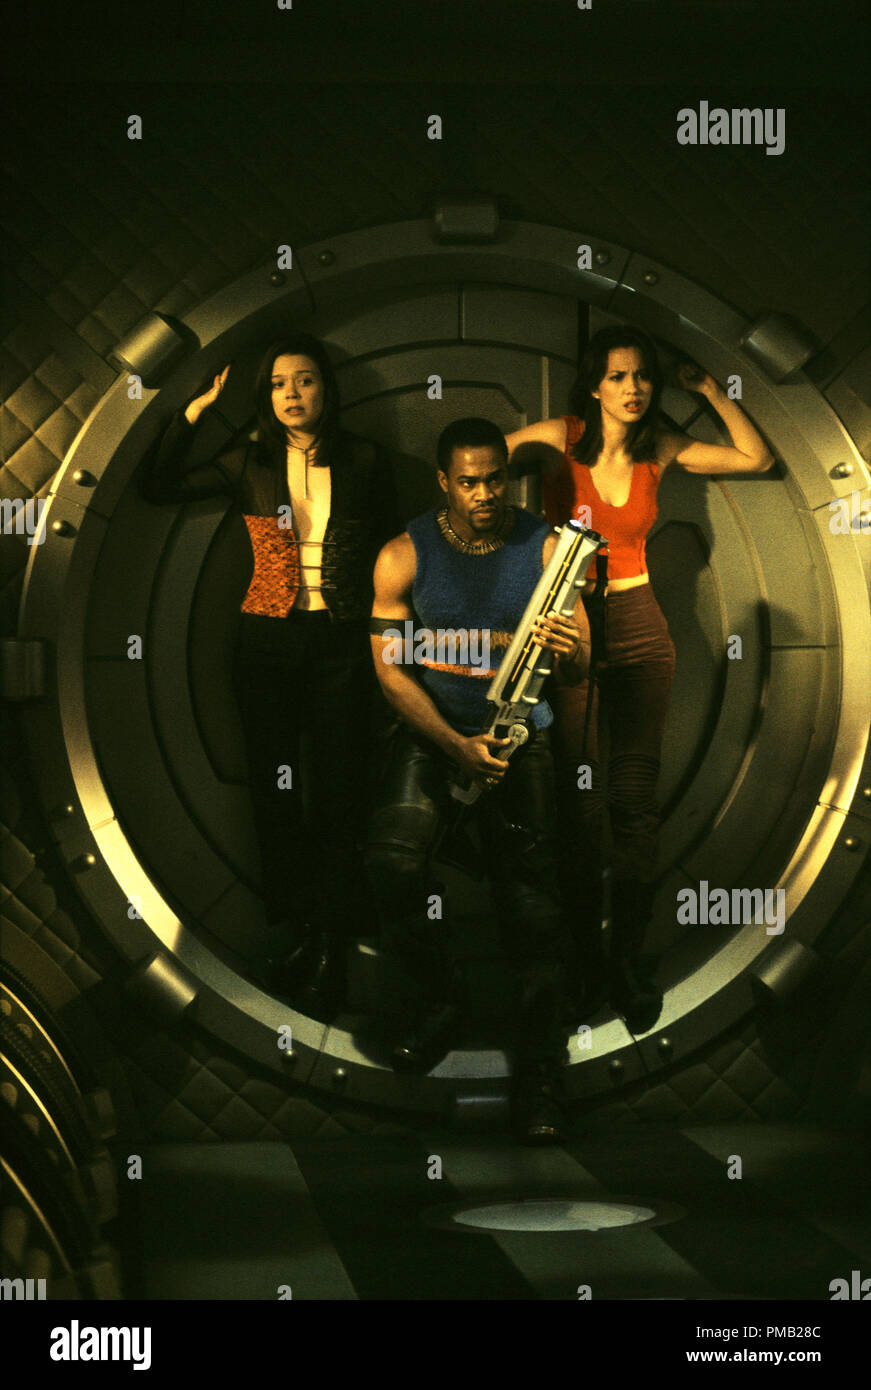 (left to right) Melyssa Ade, Derwin Jordan and Lexa Doig star in New Line Cinema's, Jason X. (2002) - Stock Image